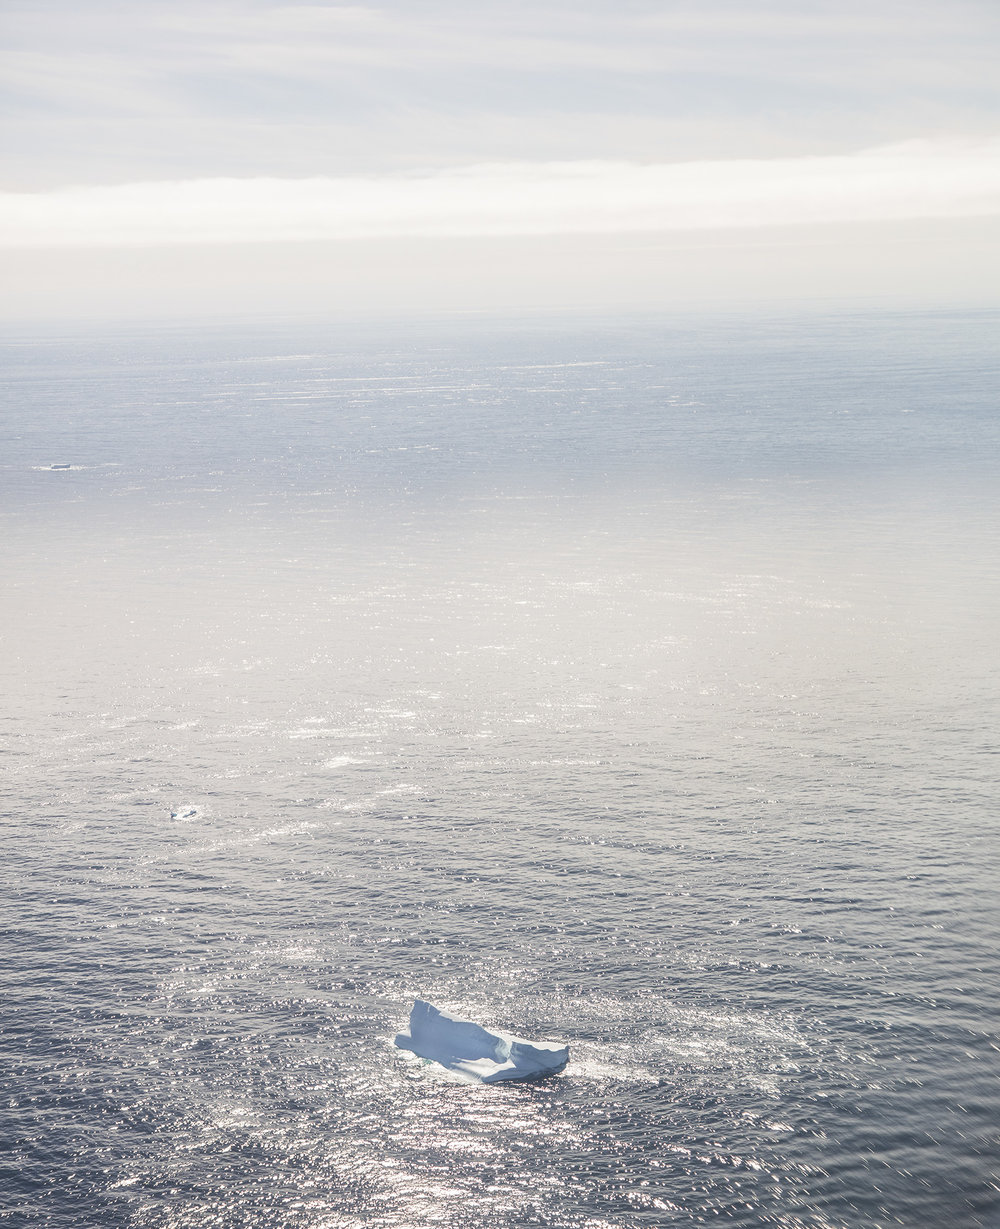 International Ice Patrol - This story chronicles a 9-hour operation over the North Atlantic and Arctic as they survey the great circle shipping lanes. Their mission is primarily to spot, identify, catalog, and alert traveling sea craft of icebergs that pose a potential threat. It was founded by 17 countries in reaction to the sinking of the Titanic (1914) and is operated by the US Coast Guard. There been not one major accident involving ice ever since.  One that day, they logged 1,524 drifting icebergs. Commissioned by Monocle MagazineWriter: Tomos LewisLink to story